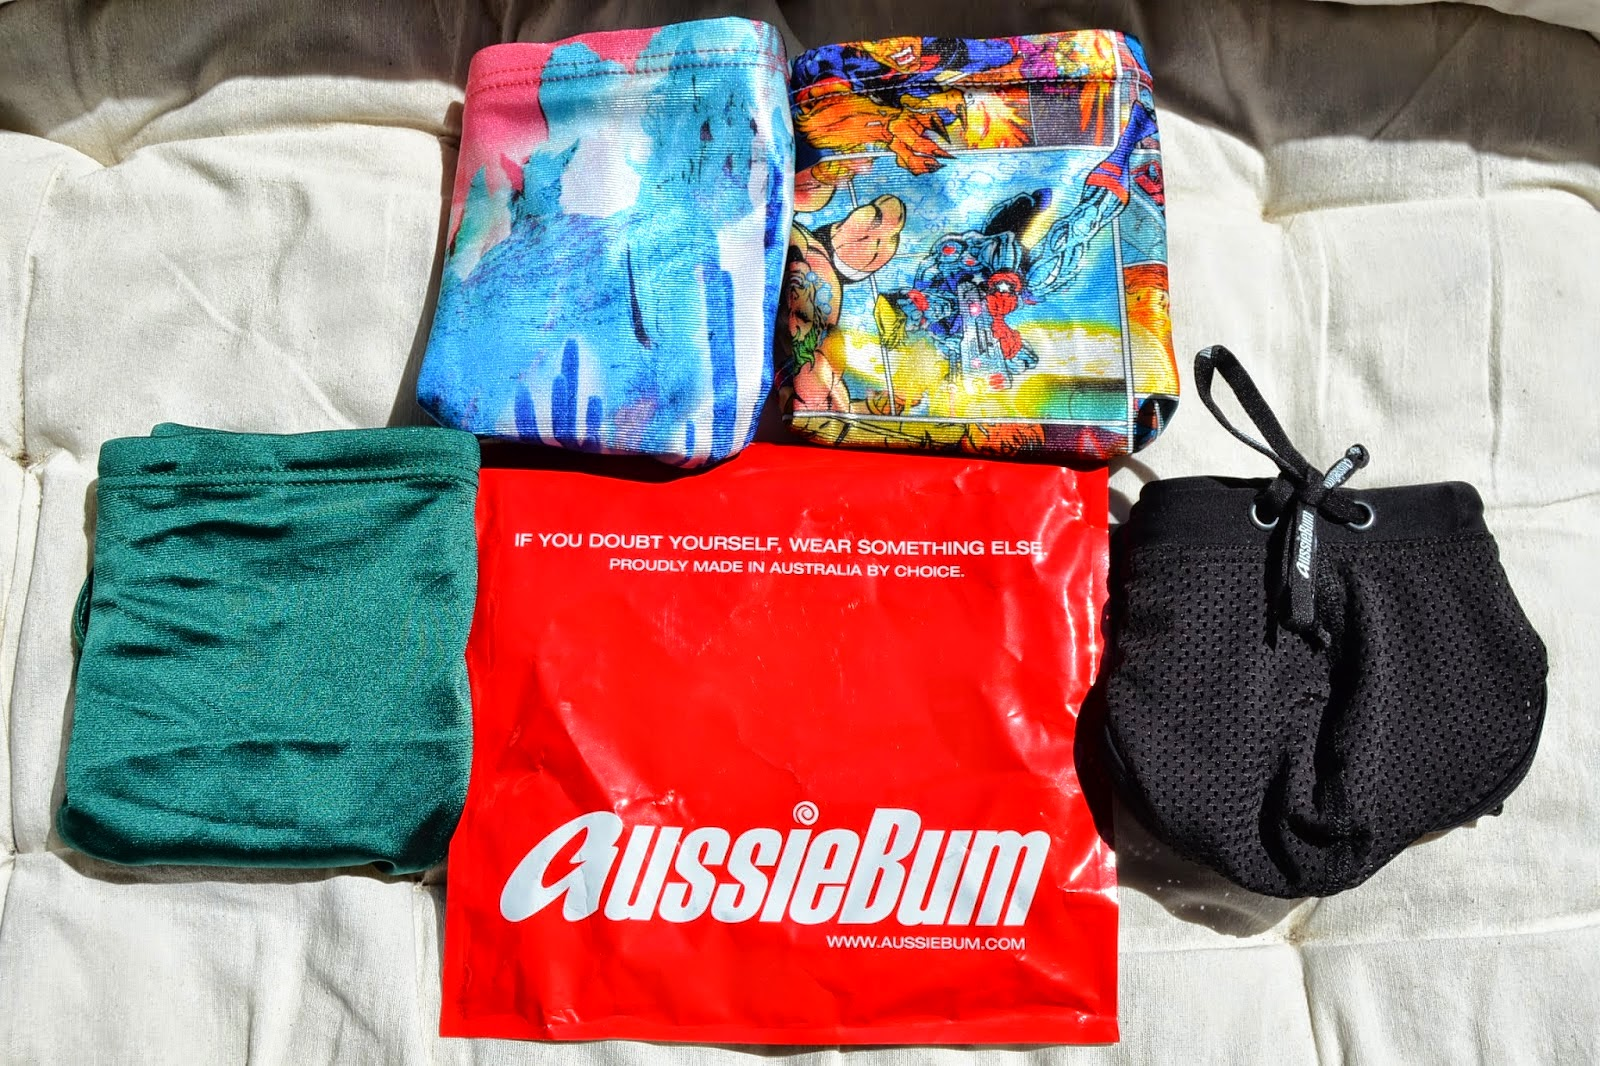 http://www.syriouslyinfashion.com/2014/08/aussiebum-super-hot-swimwear.html